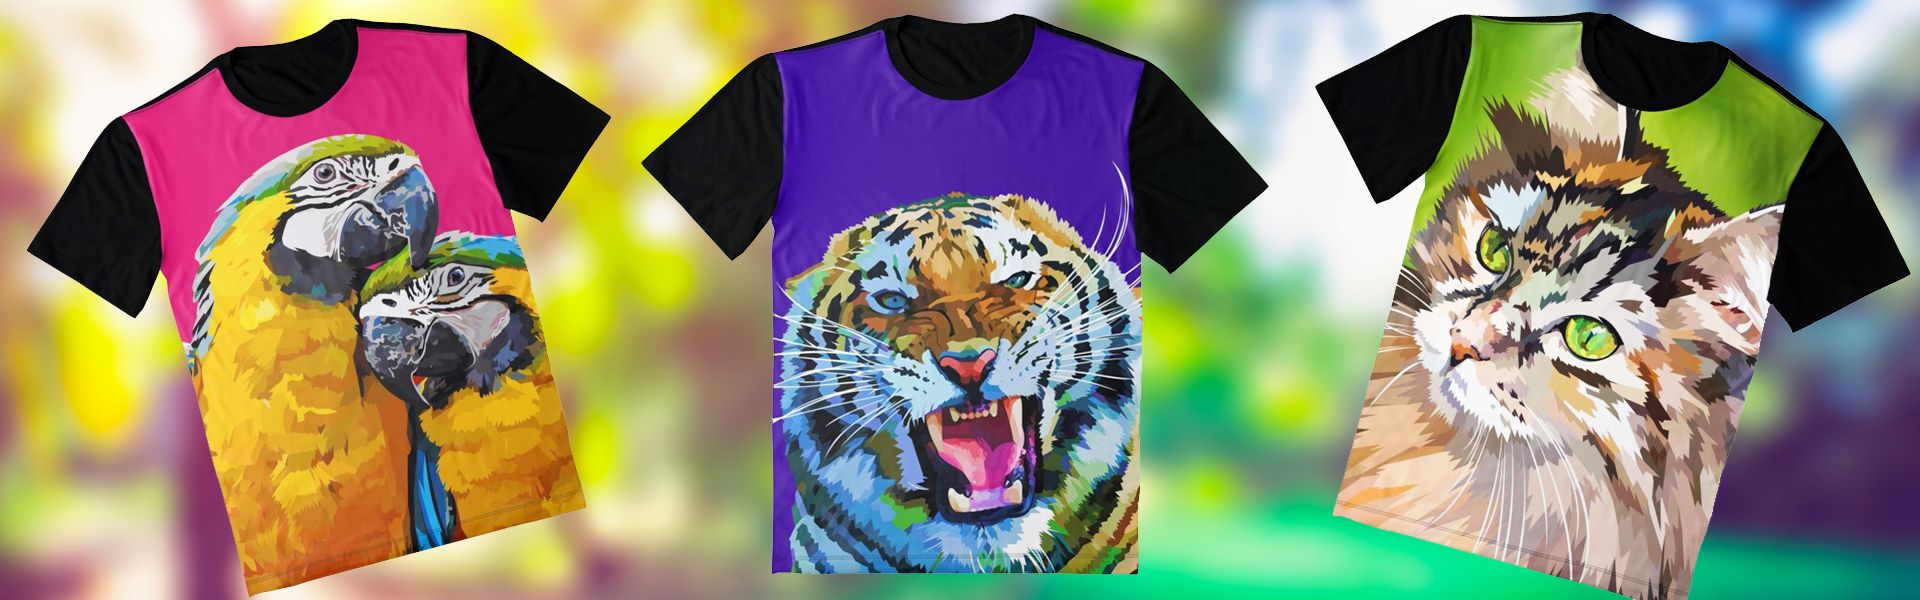 Tshirts met dieren print / T-shirts with animal prints